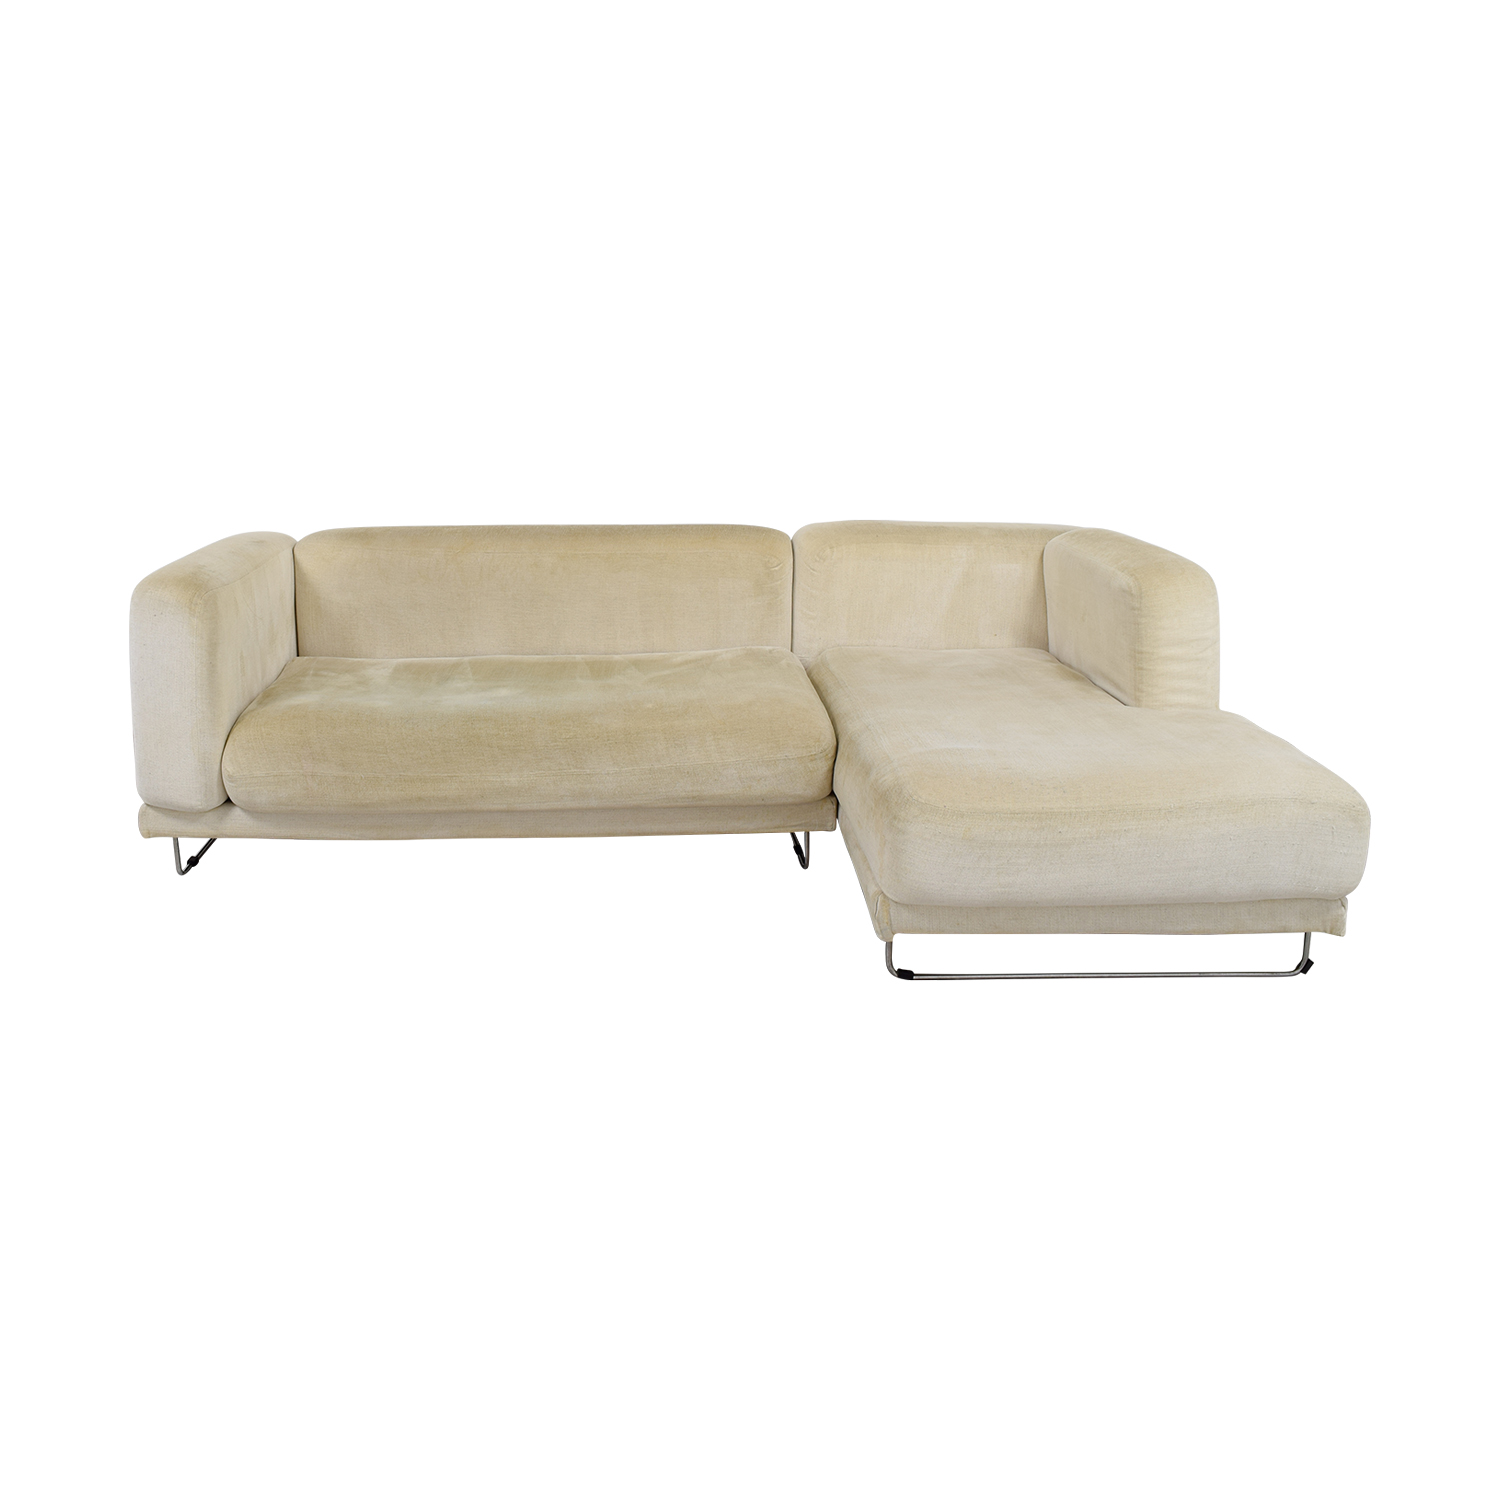 82 off ikea ikea white chaise sectional sofas for Chaise urban ikea